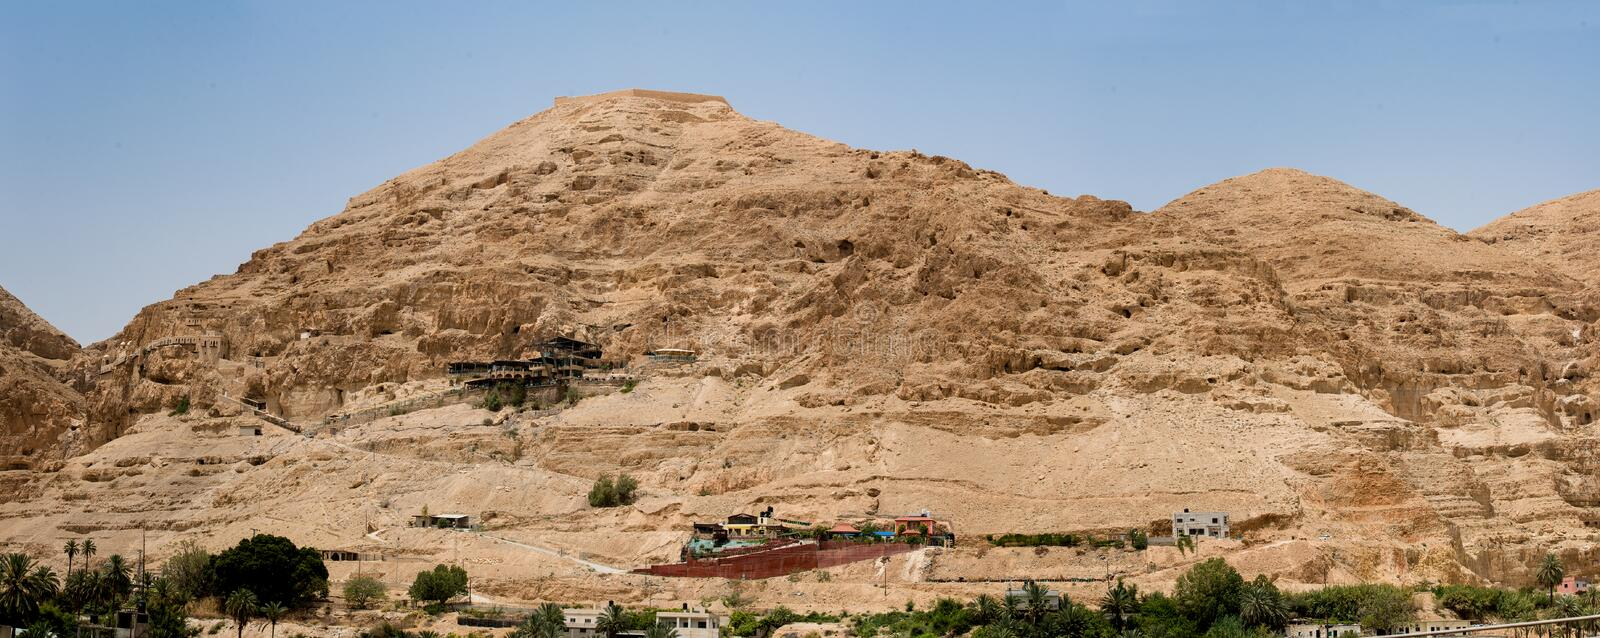 Mount of Temptation in the desert with acable car and the Monastery of Qurantul stock photography